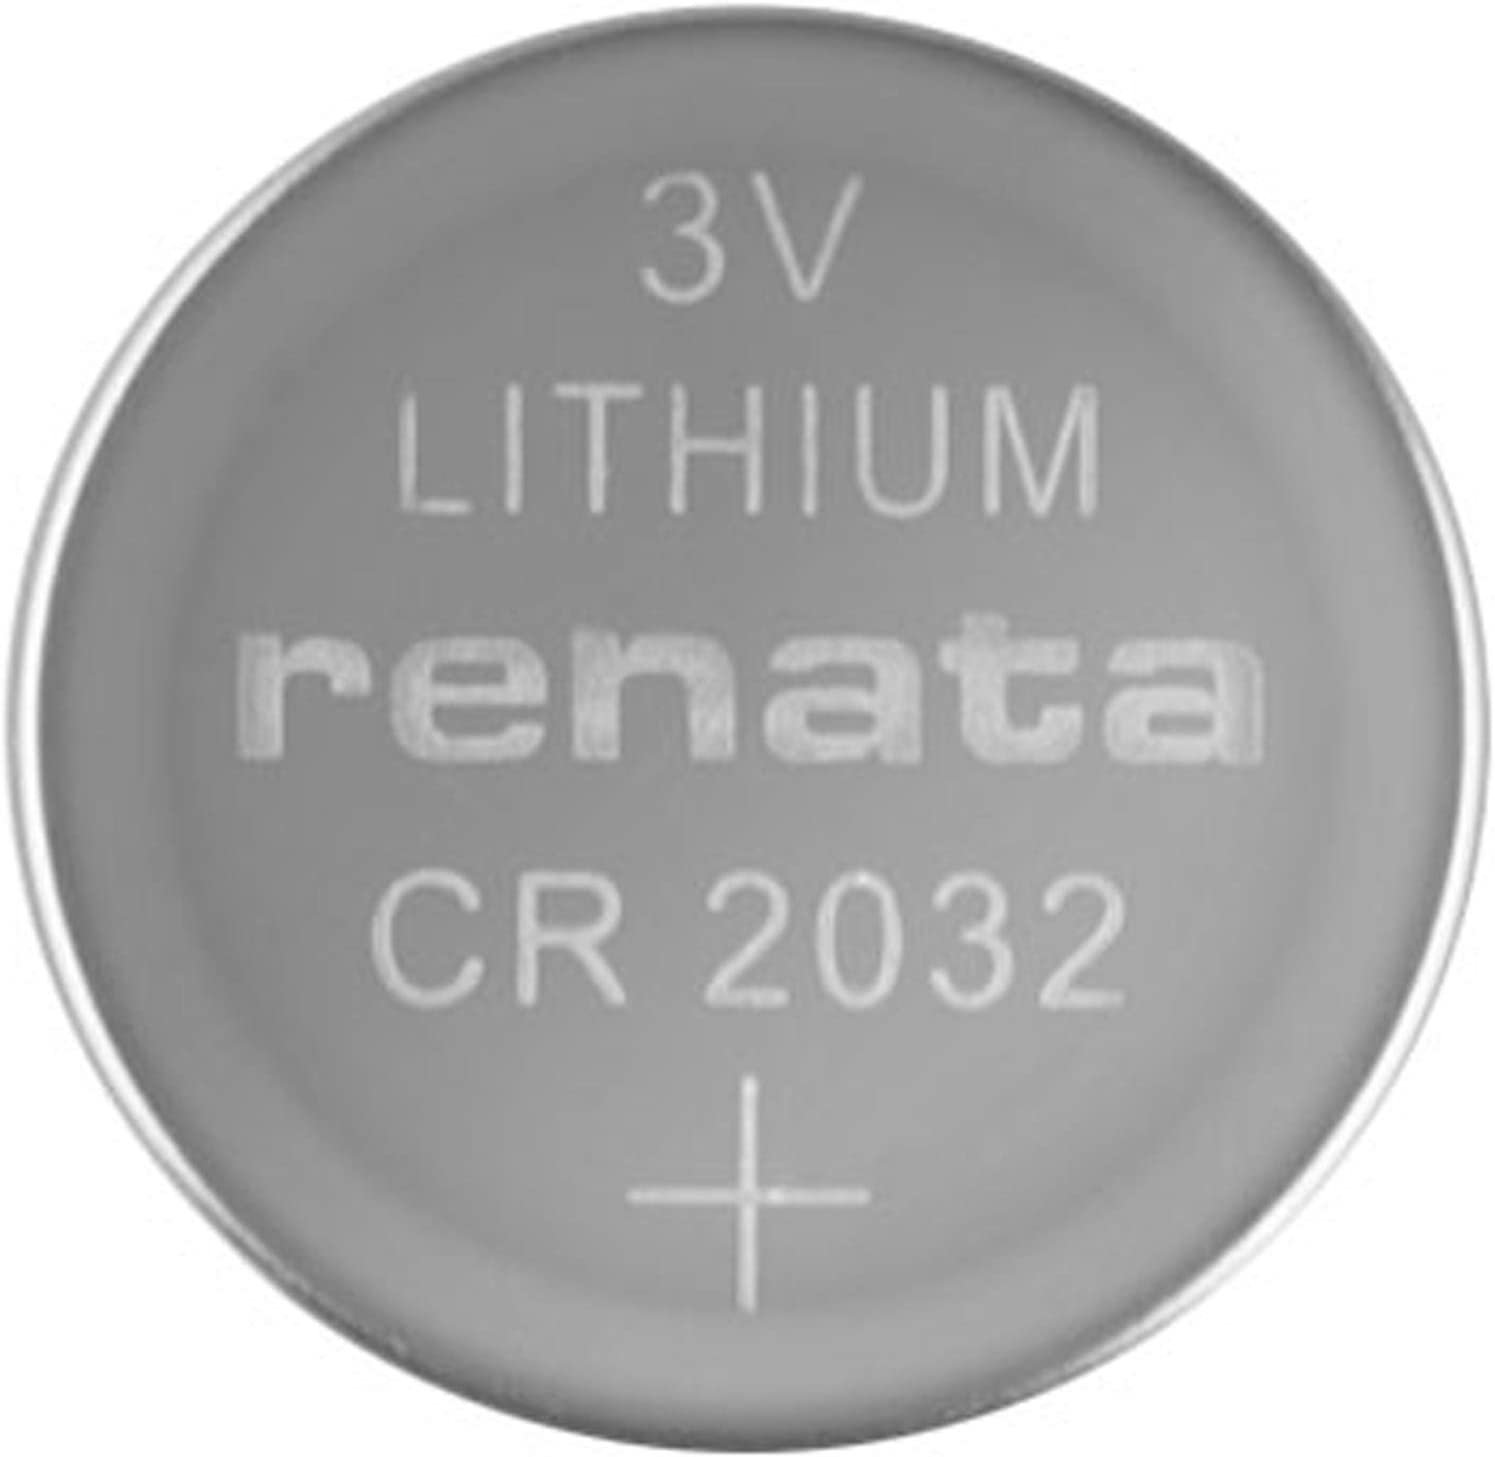 Renata Coin Cell Battery CR2032 Lithium 3V Ranking TOP4 DL20 In a popularity Replaces